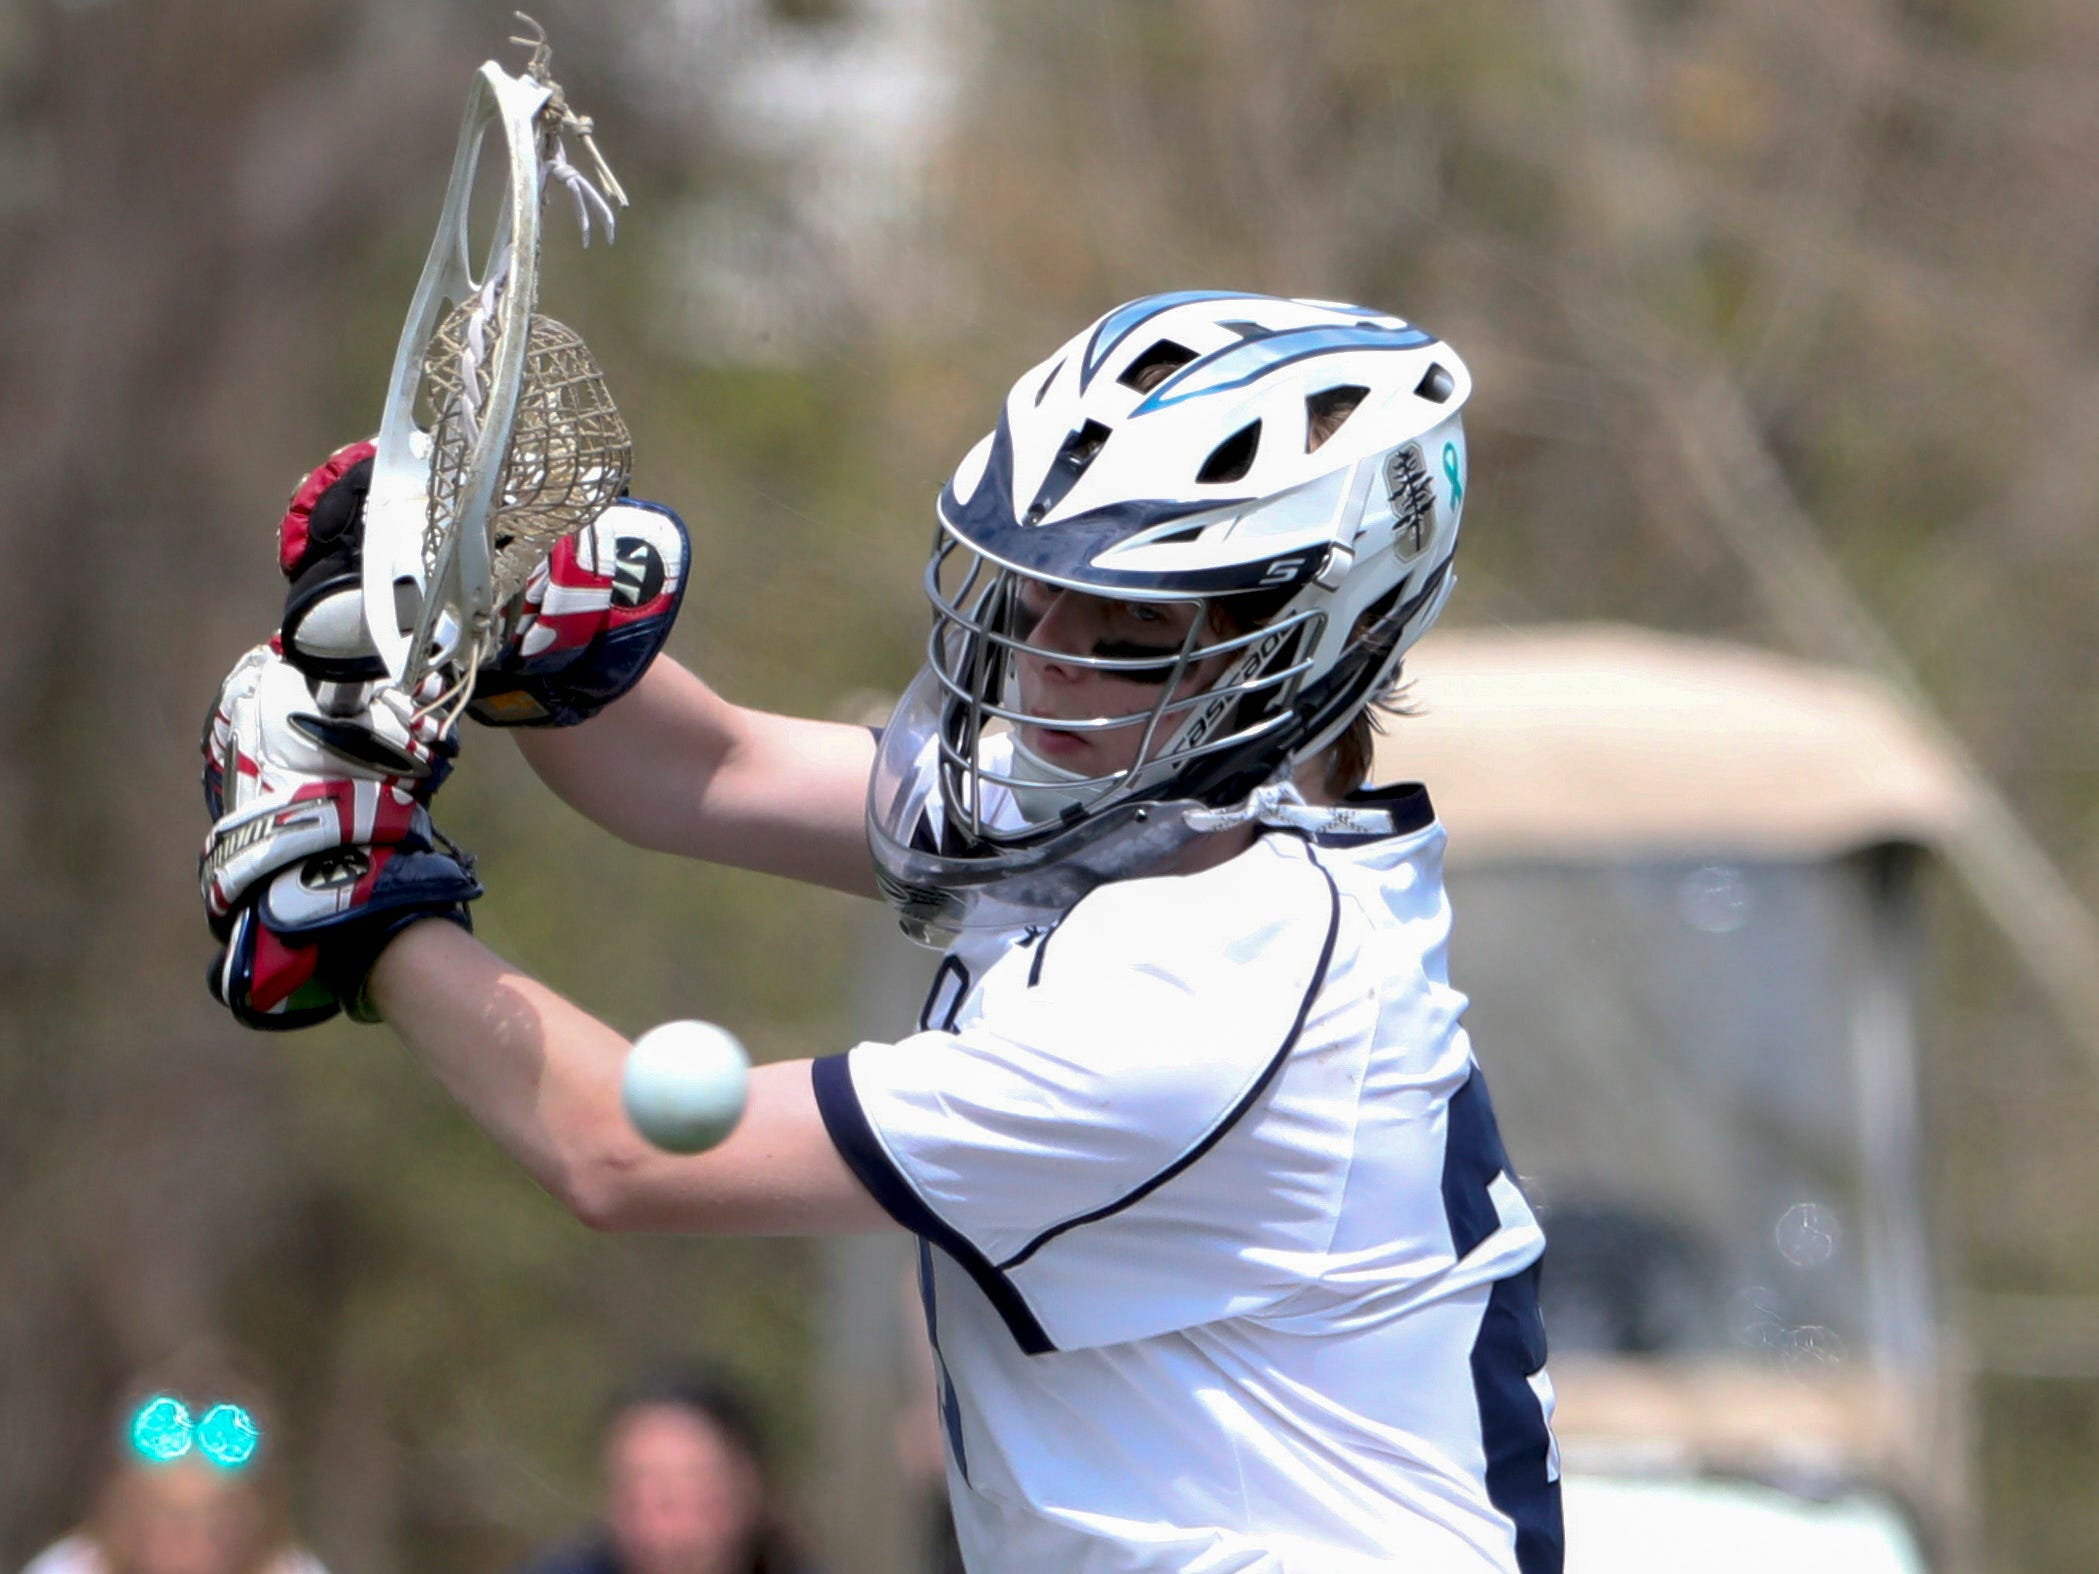 A shot goes wide of the net and Sanford goalie Owen Goodier in the second half of Sanford's 12-10 win Saturday.